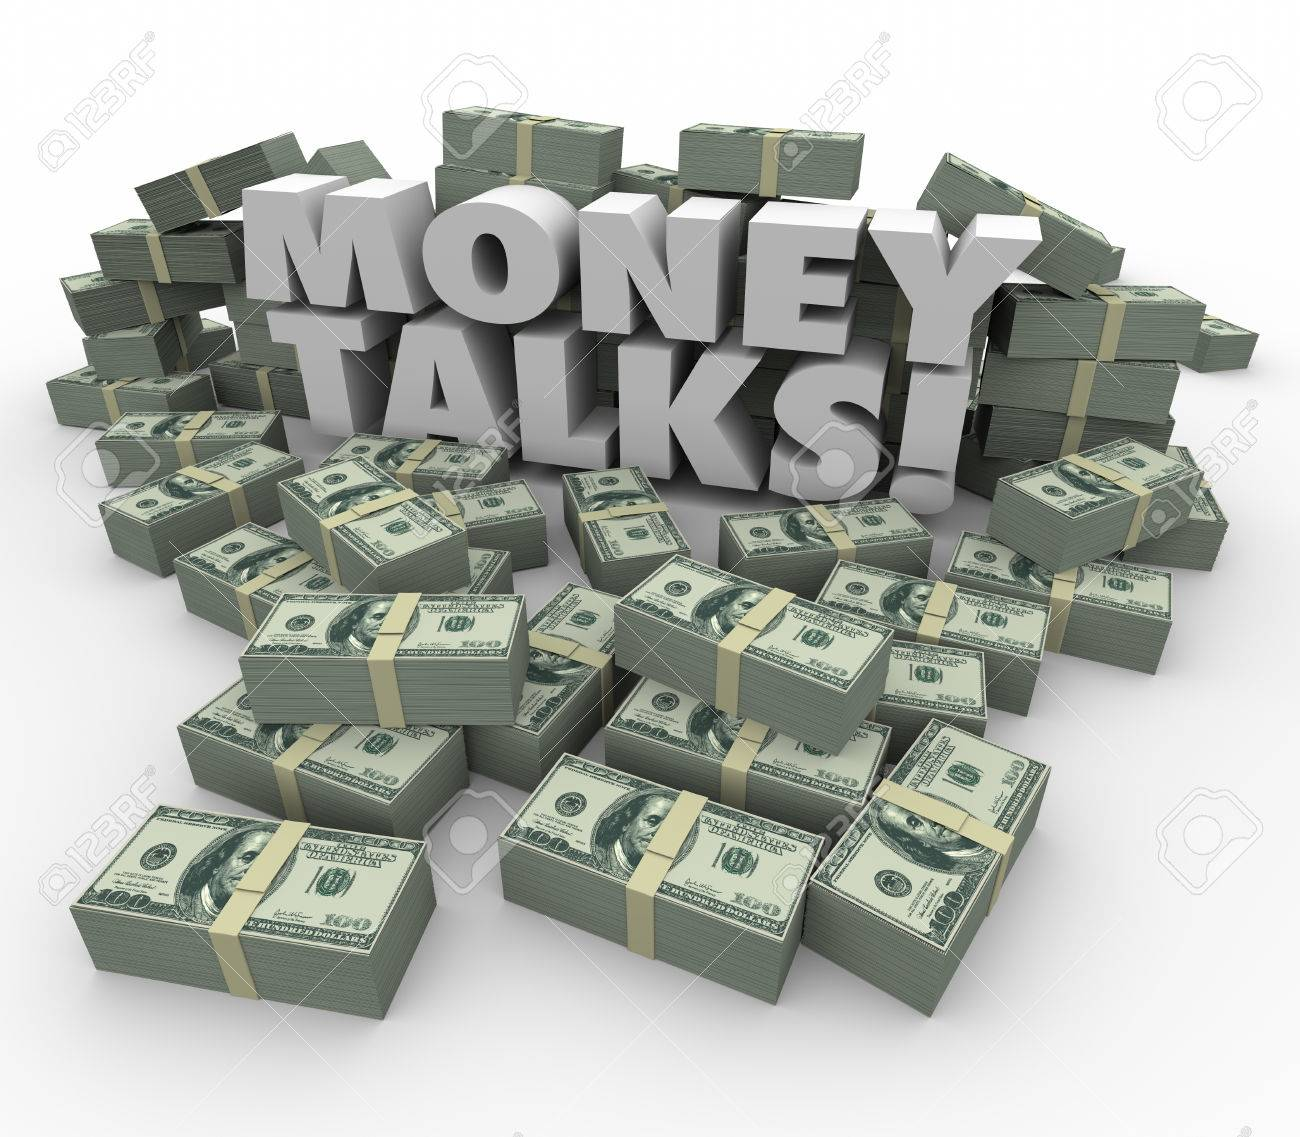 Money Talks Words In White 3d Letters Surrounded By Staks Or.. Stock Photo, Picture And Royalty Free Image. Image 40336564.